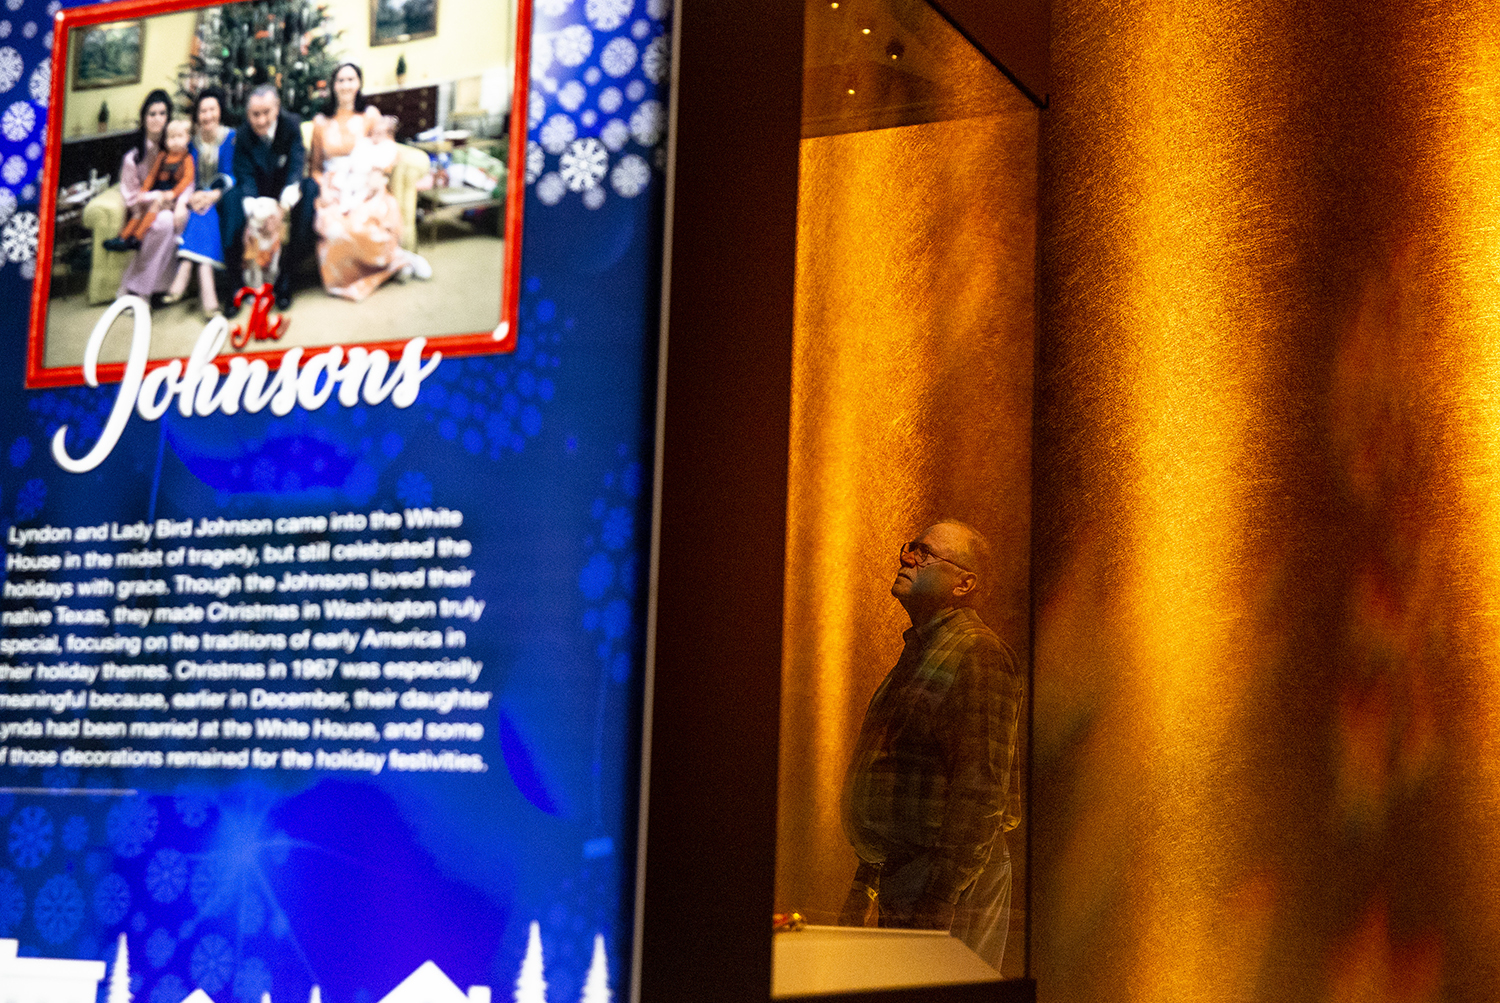 """Tom Schmidt watches a video on how different presidential administrations have celebrated Christmas, part of """"Holidays at the White House: A Presidential Christmas"""" Friday, Nov. 23, 2018 in the Treasures Gallery at the Abraham Lincoln Presidential Library in Springfield, Ill. It features decorations, photographs and gifts from the administrations of Lyndon Johnson, Richard Nixon, Gerald Ford and George H. W. Bush and runs through Jan. 6, 2019. [Rich Saal/The State Journal-Register]"""